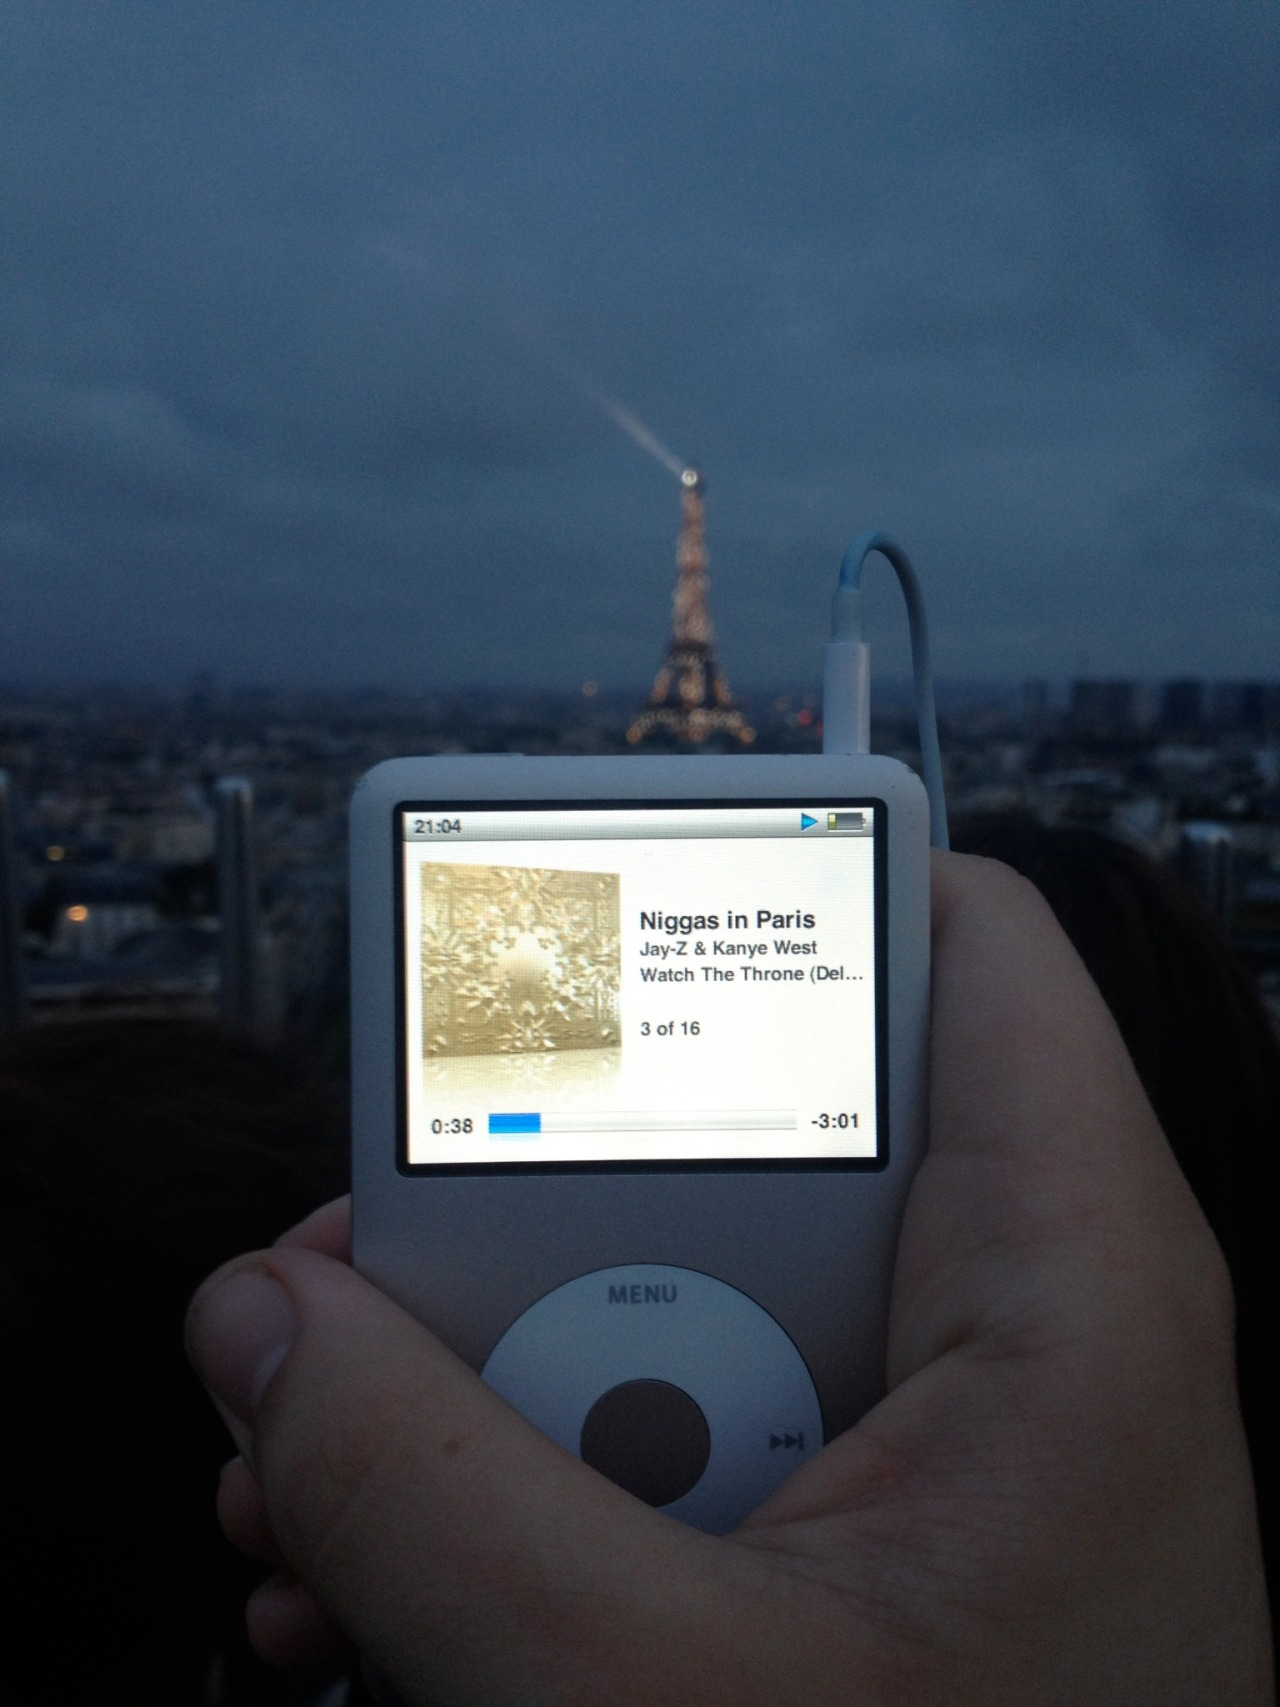 Taken by my buddy Zack when he was in Paris. Too cool.&nbs